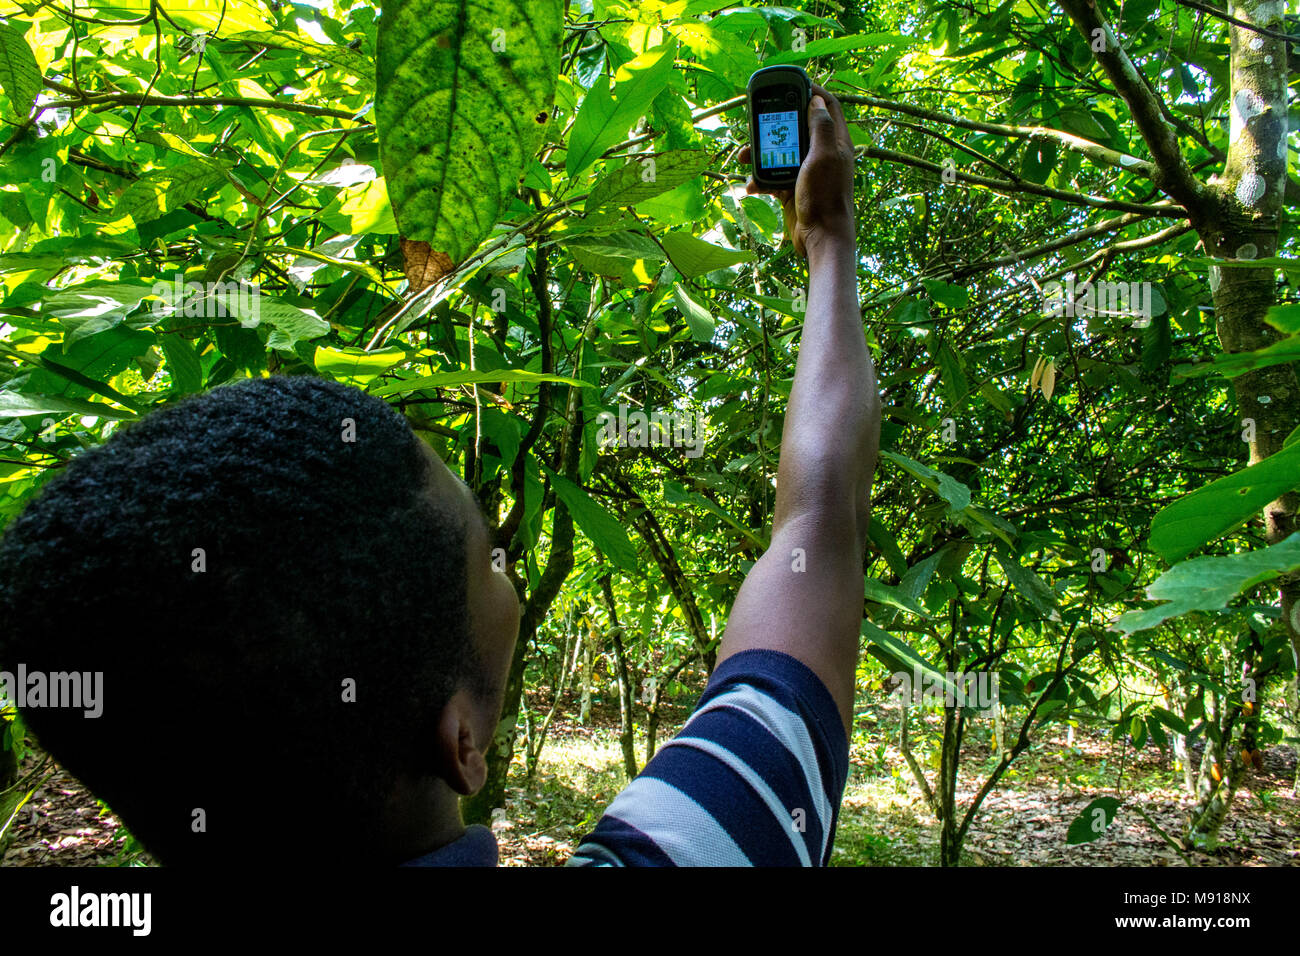 Ivory Coast. Geographical localization of a cocoa plantation with a GPS. - Stock Image